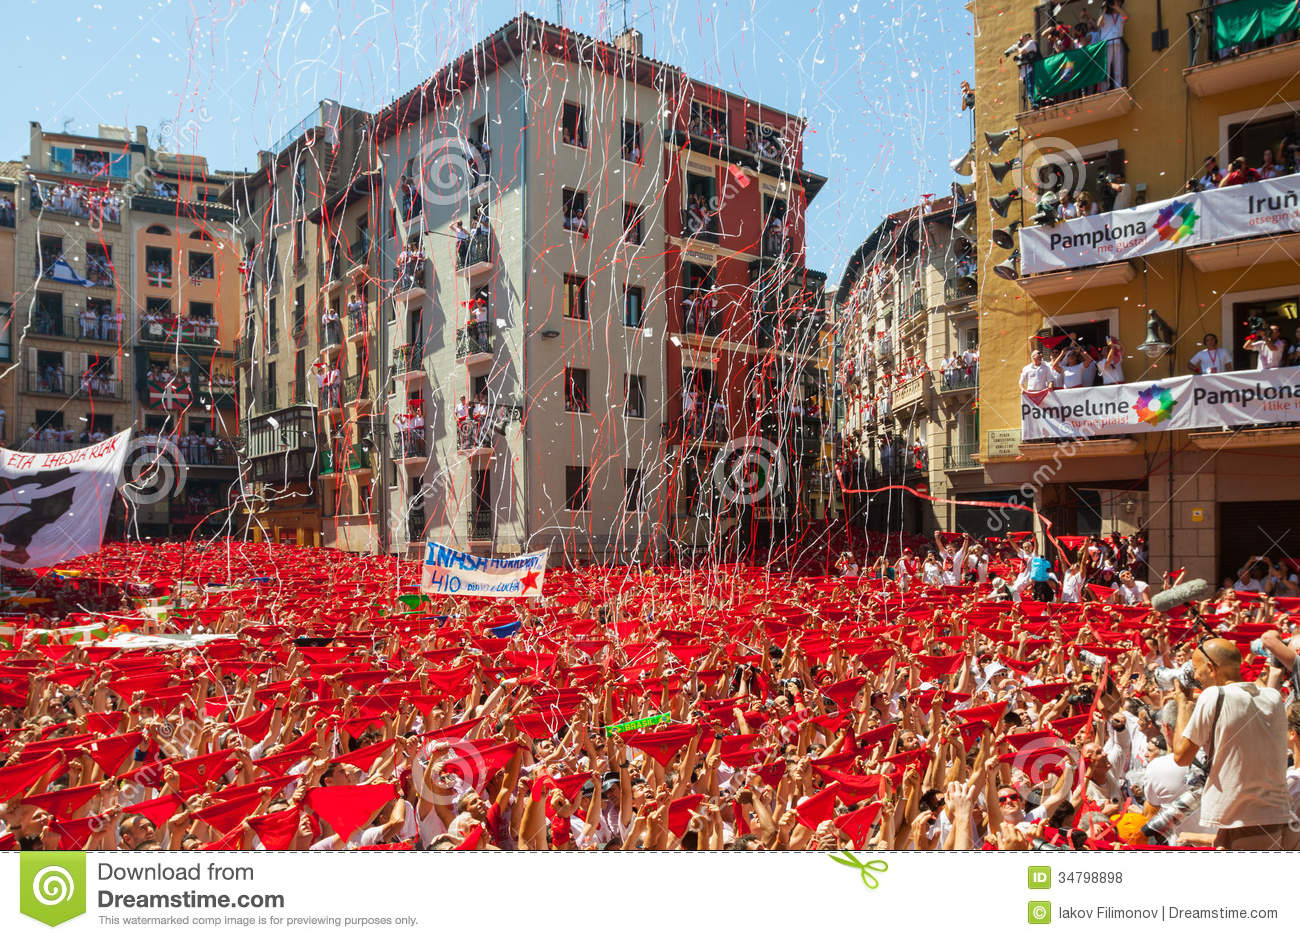 ... Festival in July 6, 2013 in Pamplona, Spain.Crowd of people in square